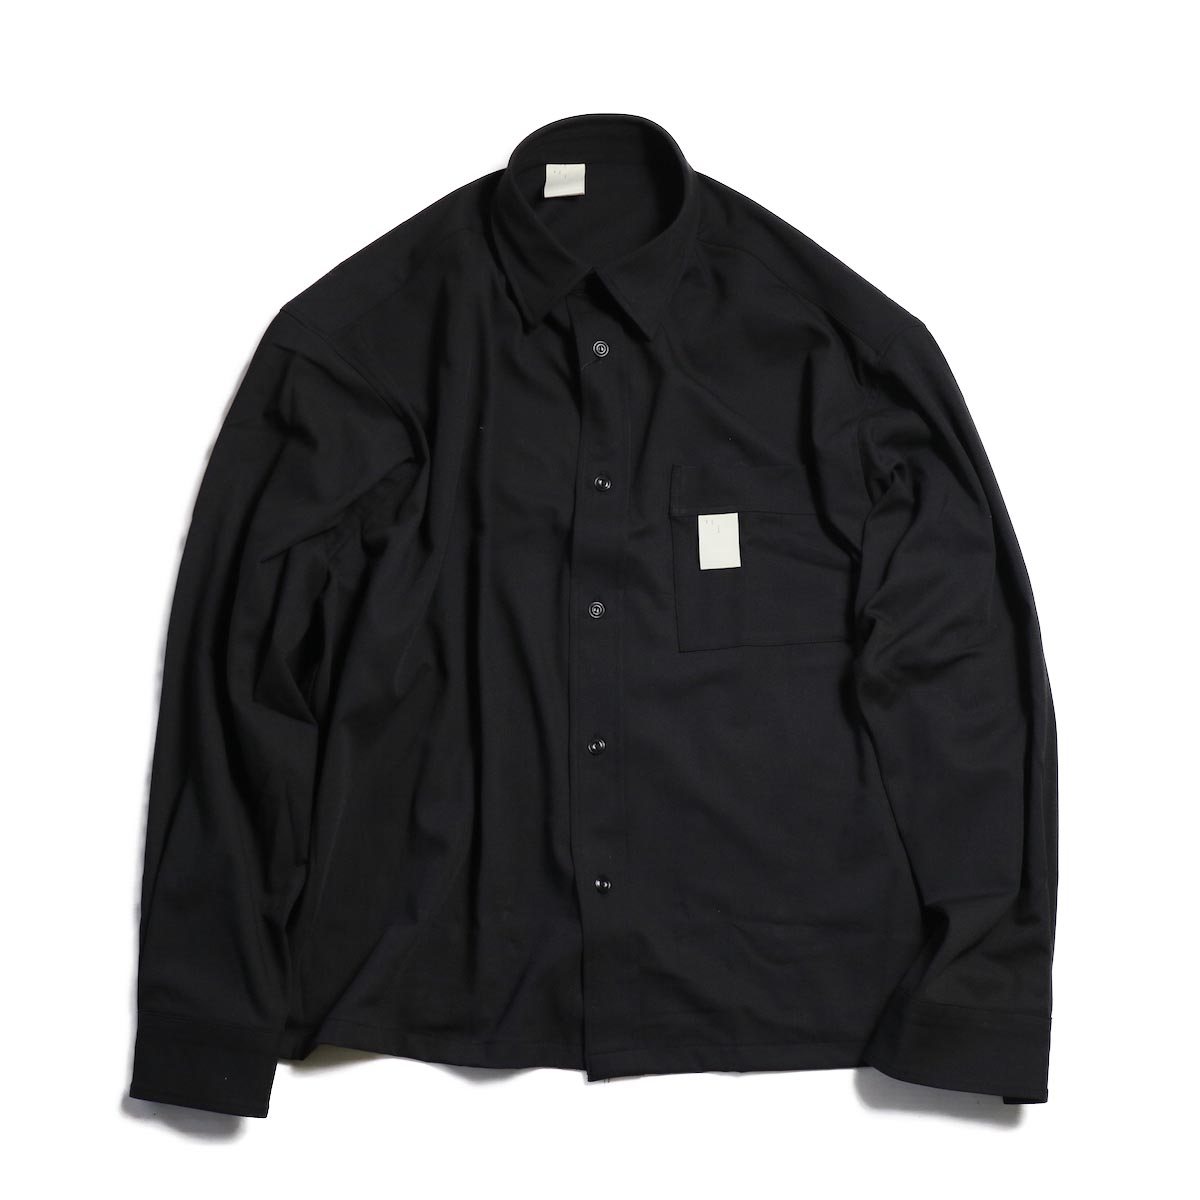 N.HOOLYWOOD  /  182-SH27-050 pieces LONG SLEEVE SHIRT -BLACK